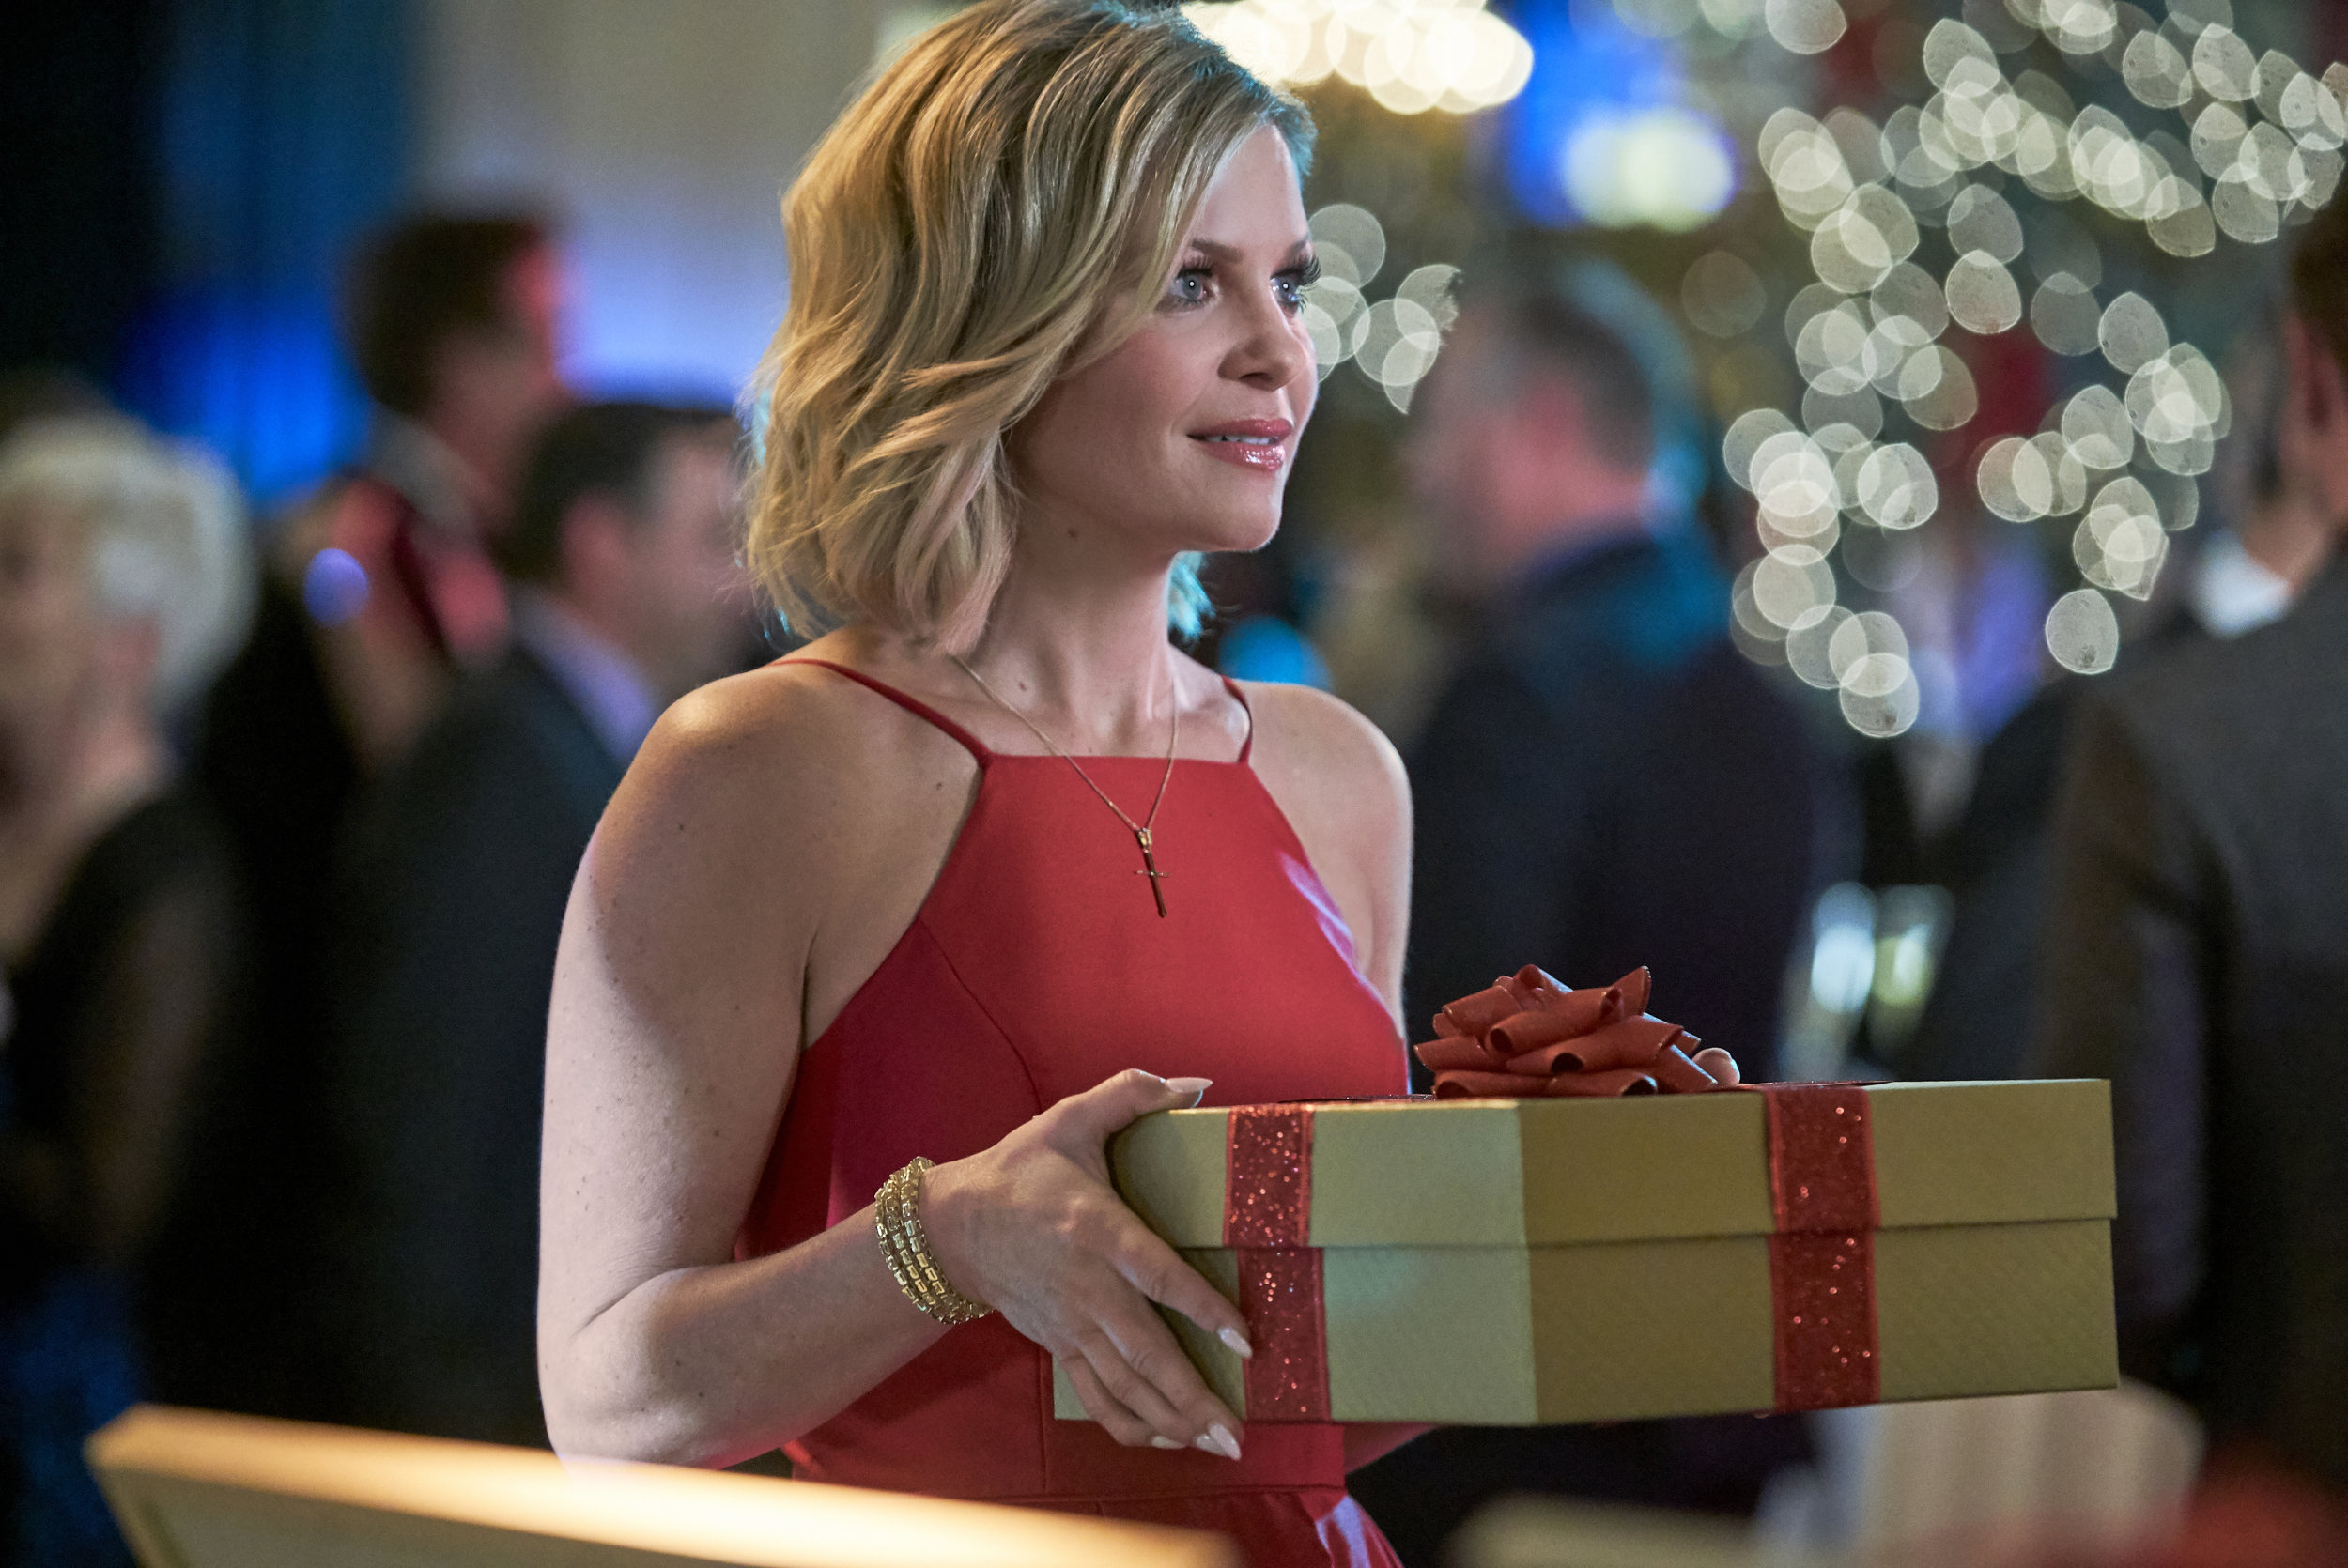 New Movies 2018 - Countdown to Christmas | Hallmark Channel